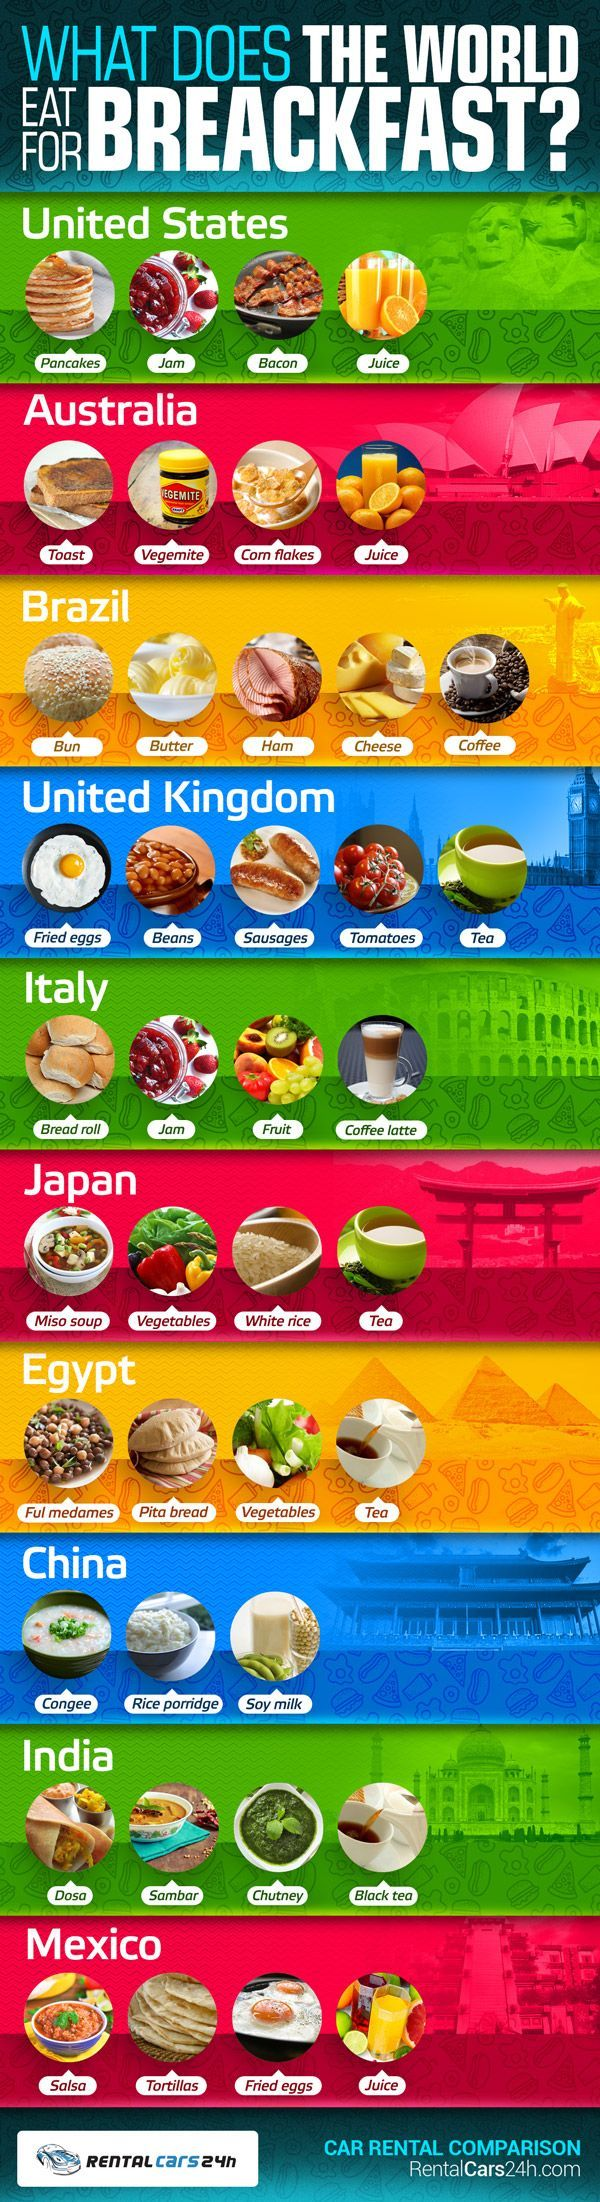 Infographic: What Does The World Eat For Breakfast? #infographic